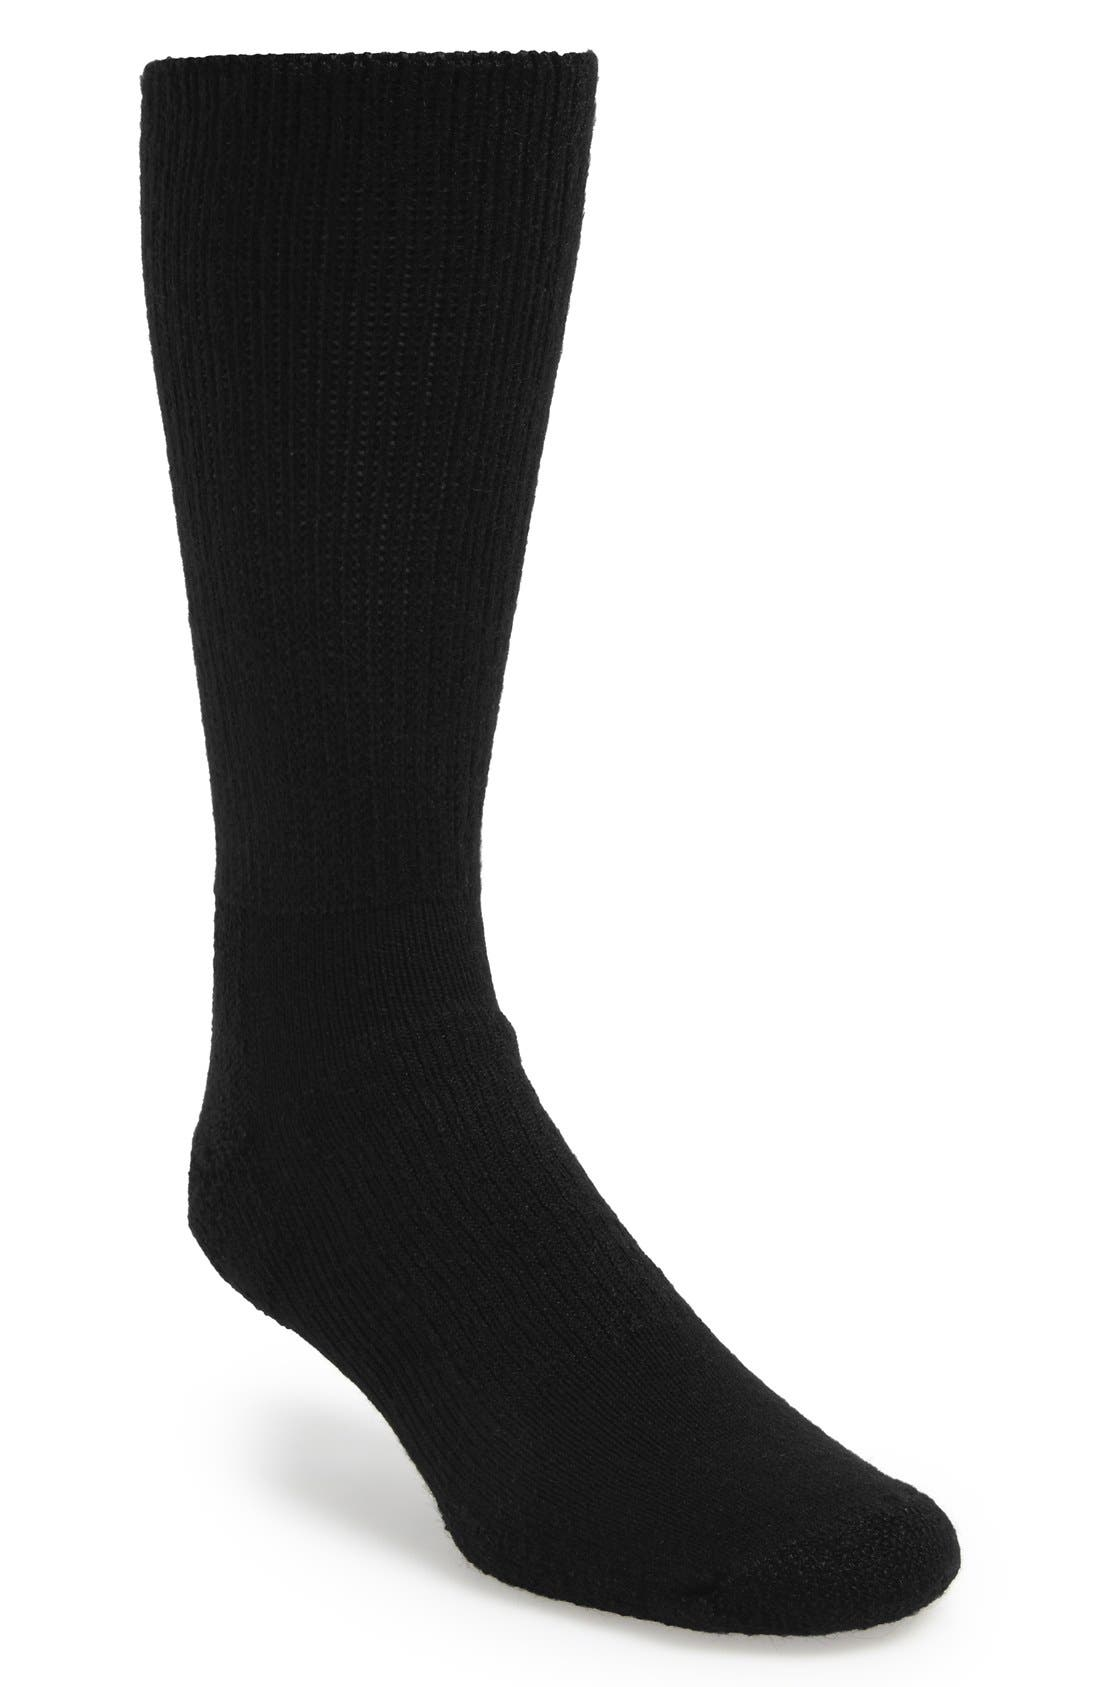 Alternate Image 1 Selected - Thorlo 'Classic' Crew Walking Socks (Men)